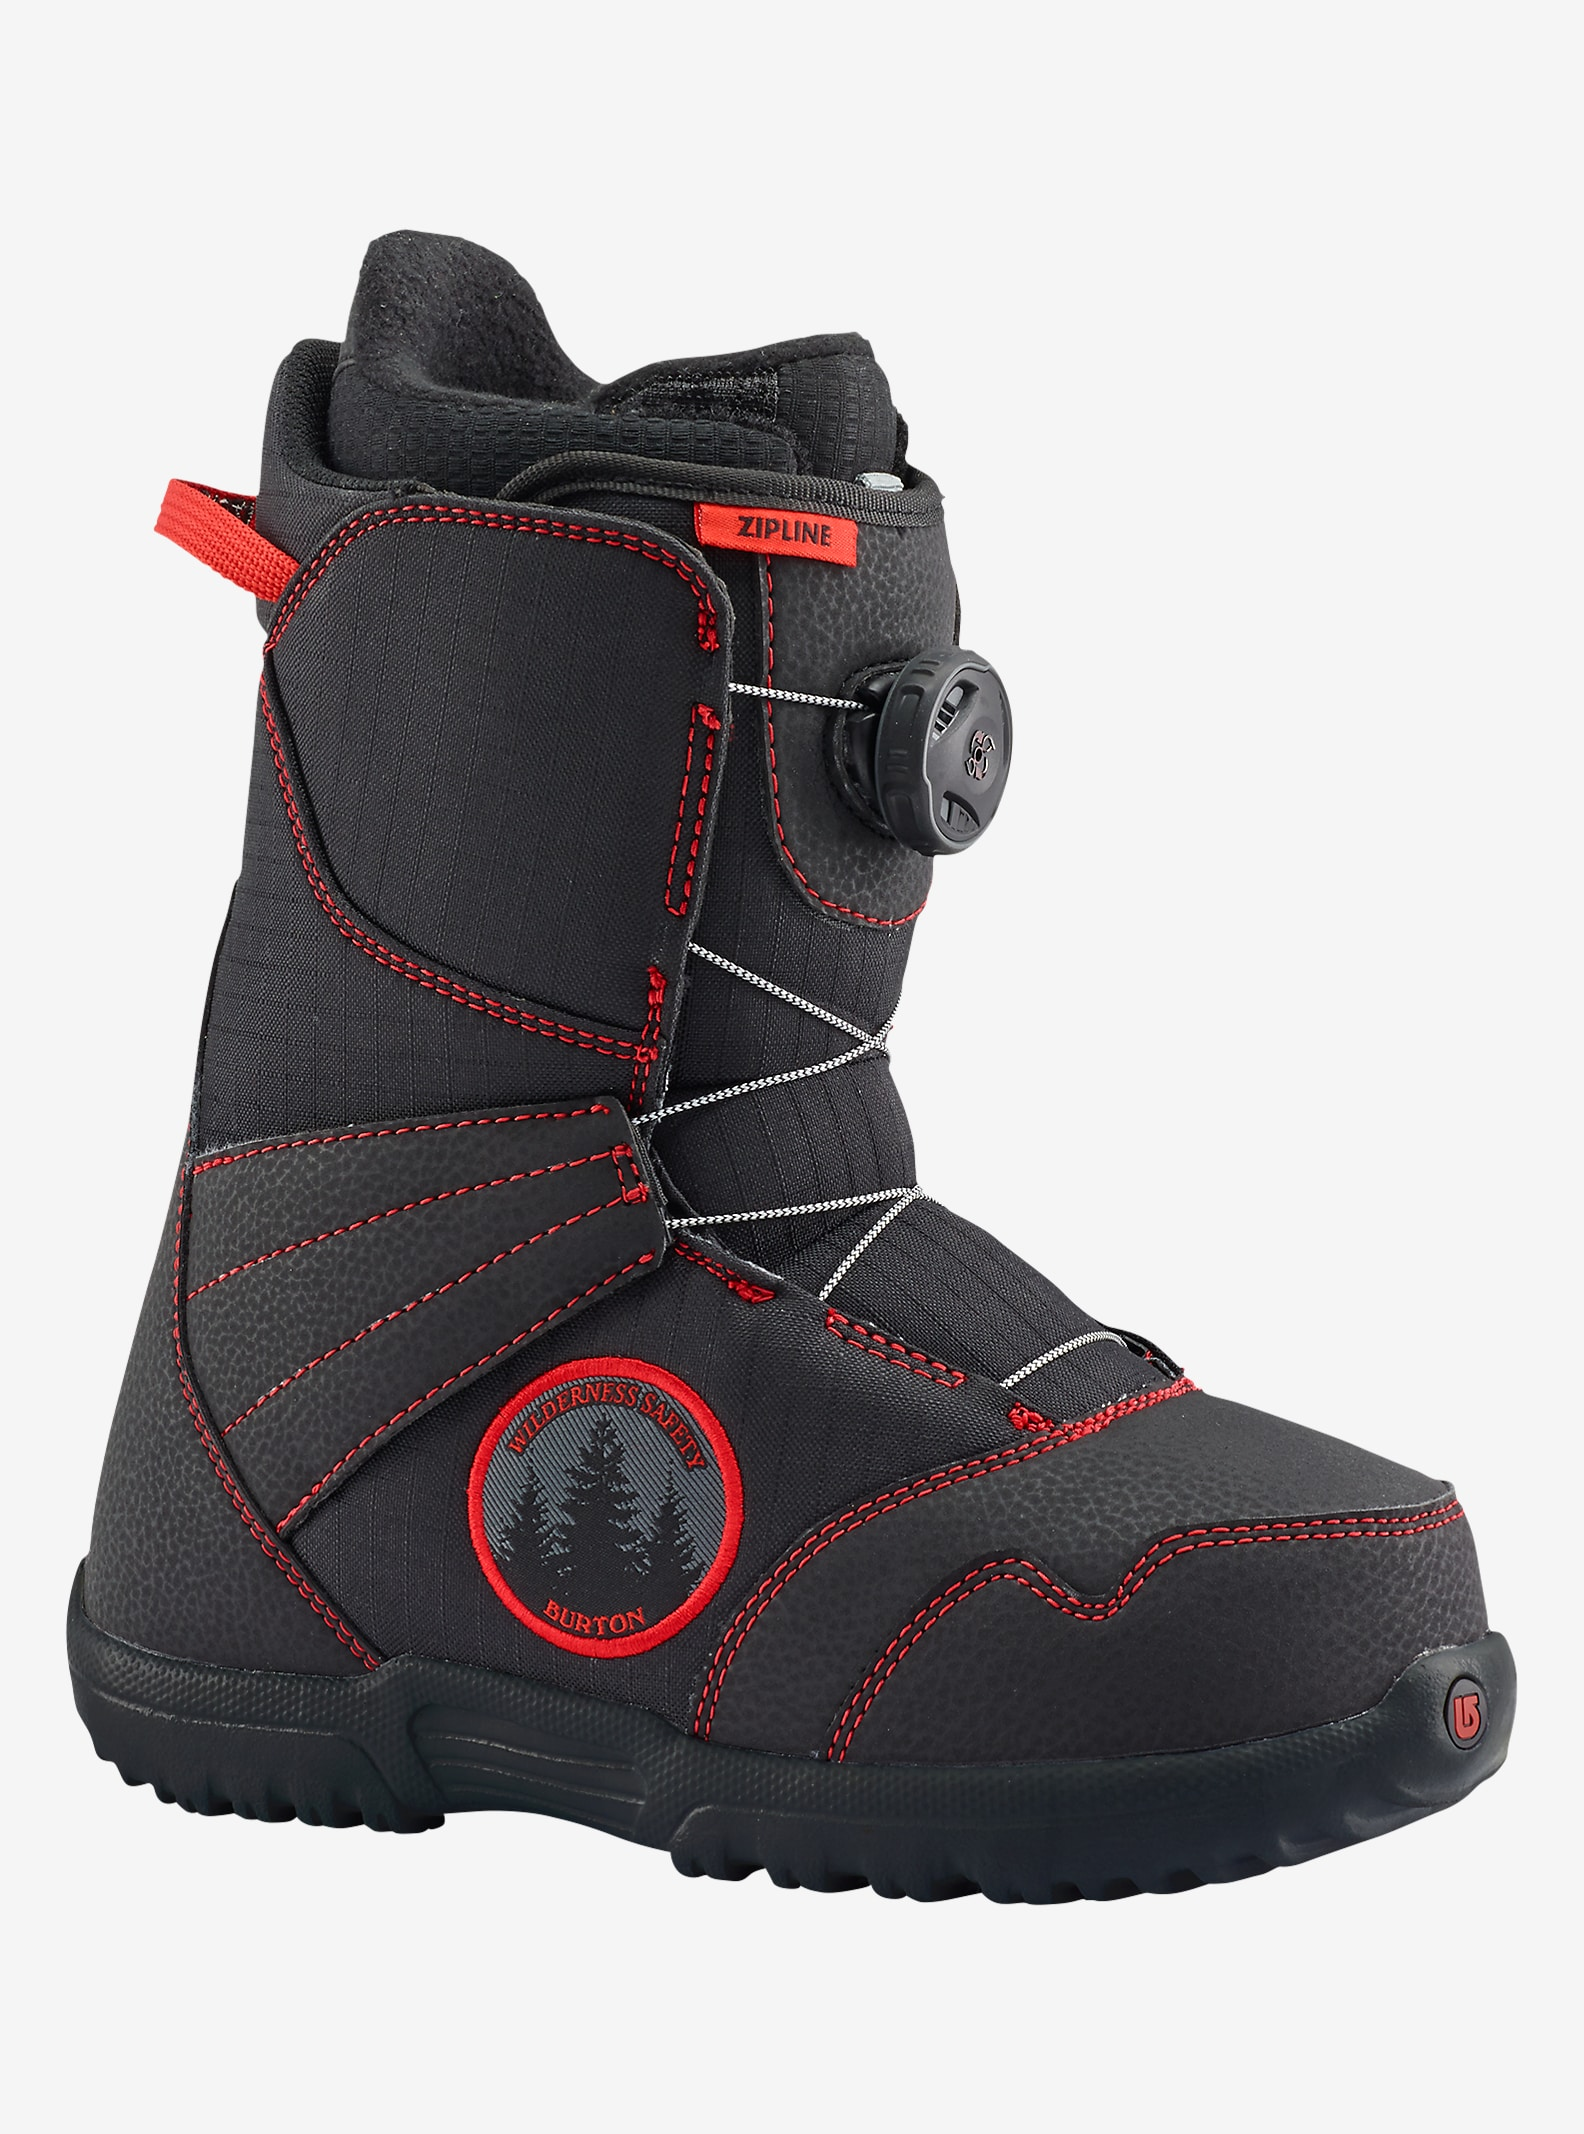 Burton Zipline Boa® Snowboard Boot shown in Black / Red